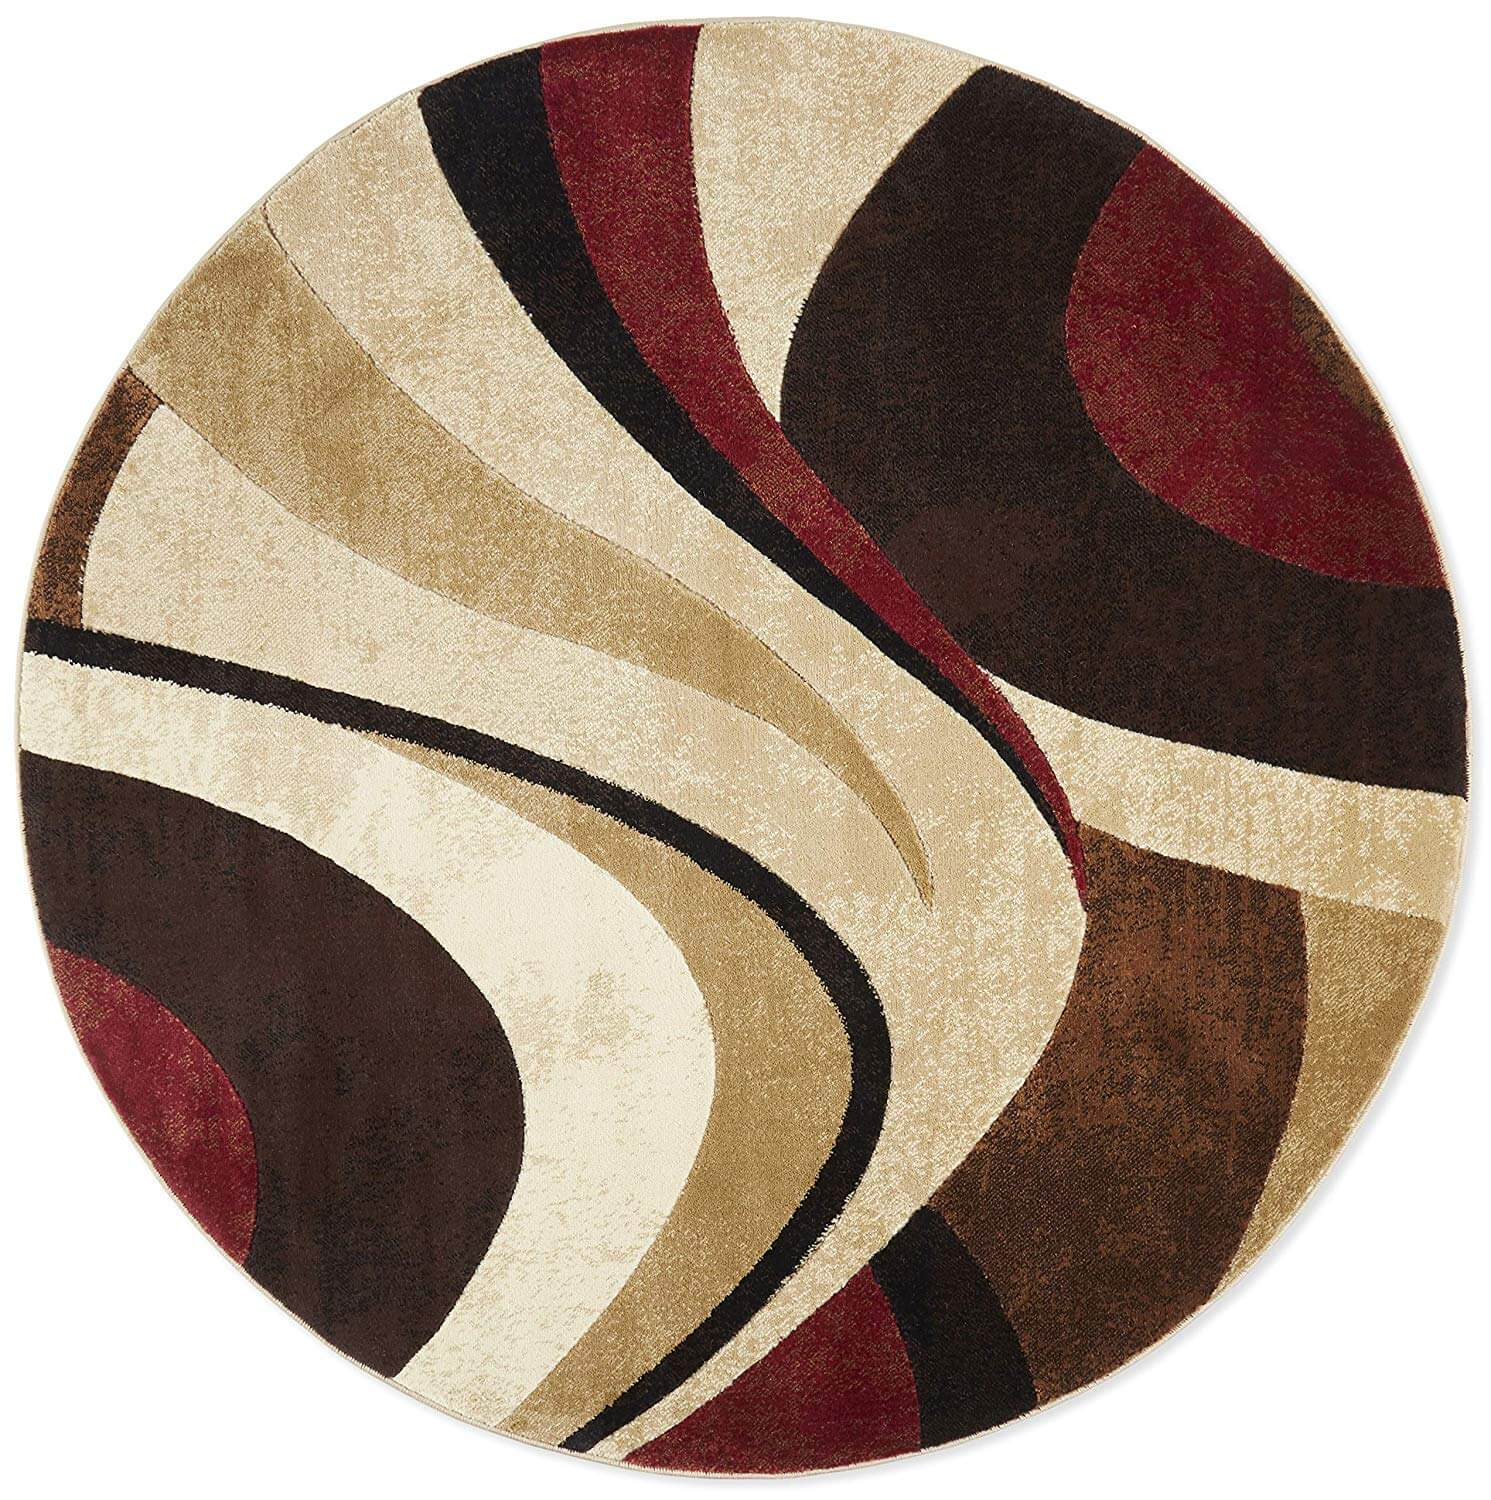 A circular rug with a swooping beige and maroon pattern.